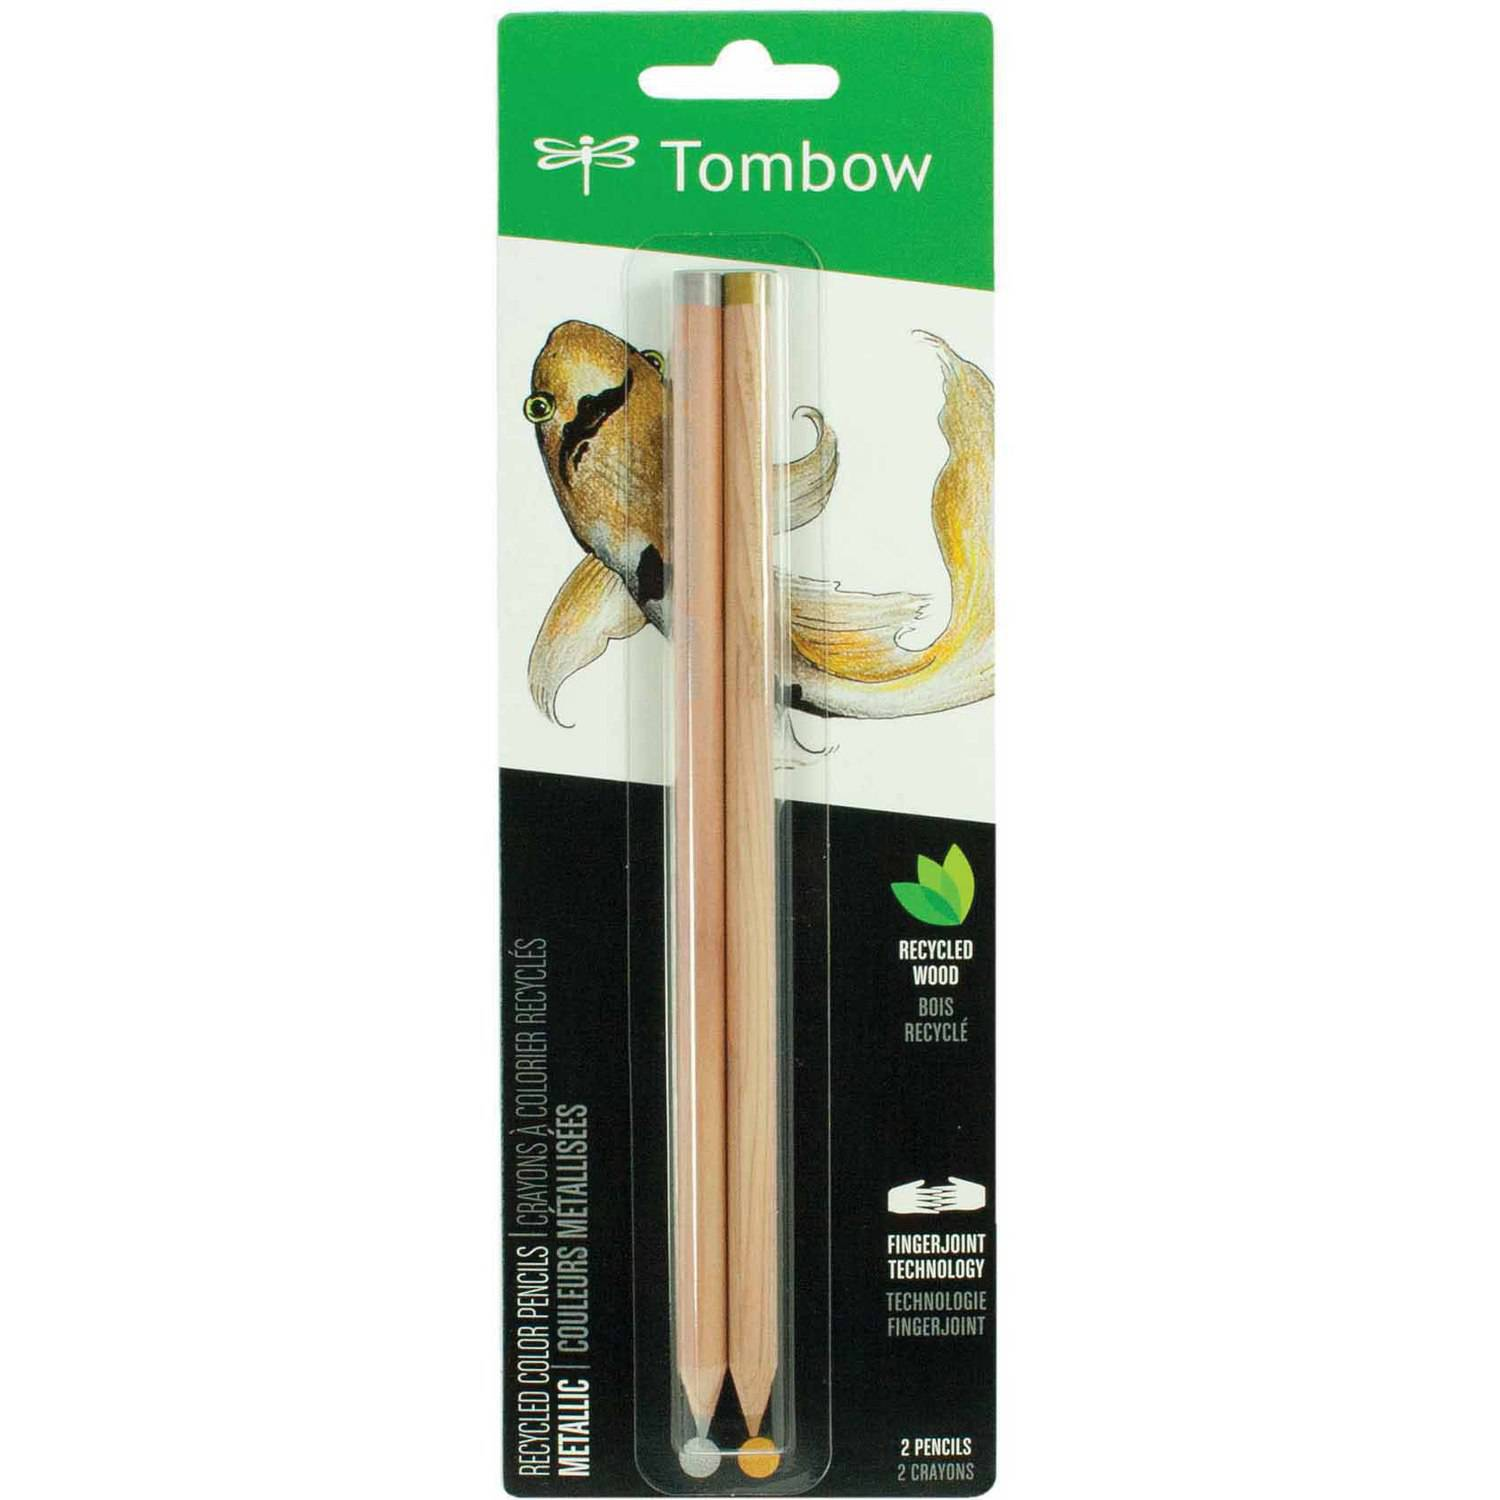 Tombow Recycled Colored Pencils, Metallic, 2-Pack